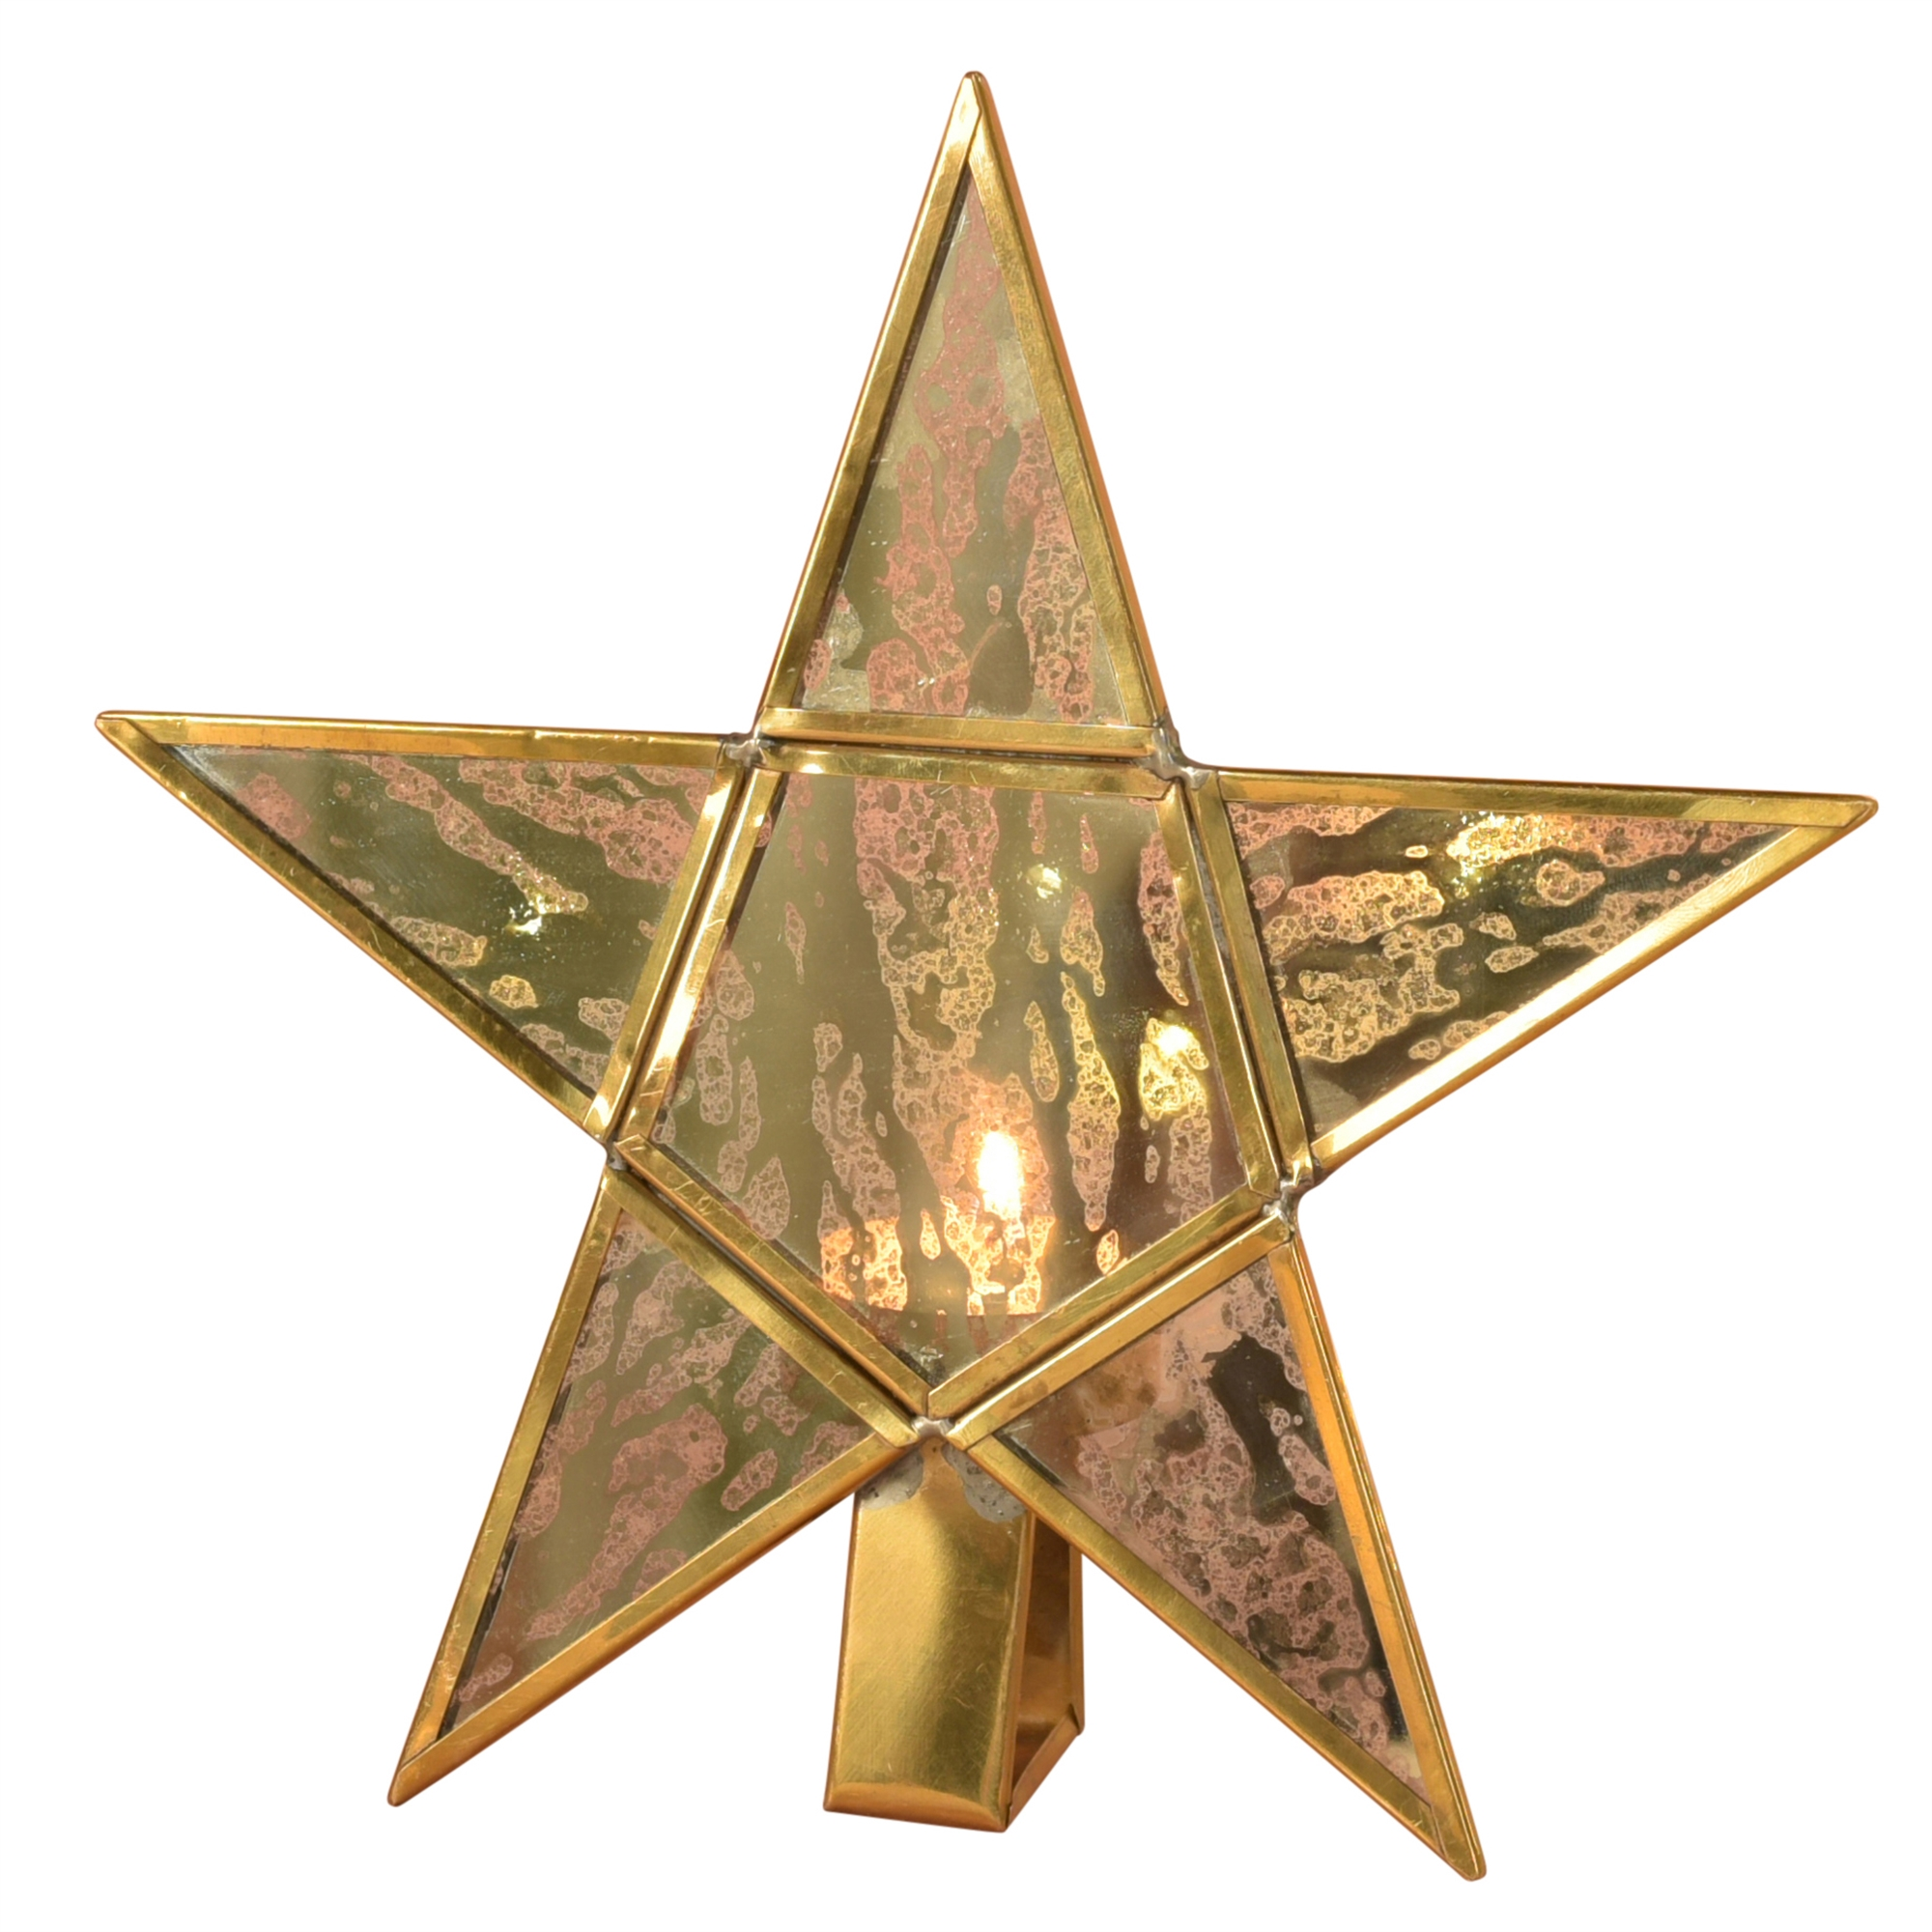 4367-14 - Antique Mirrored Star Tealight Holders - Glass & Brass - Large by HomArt